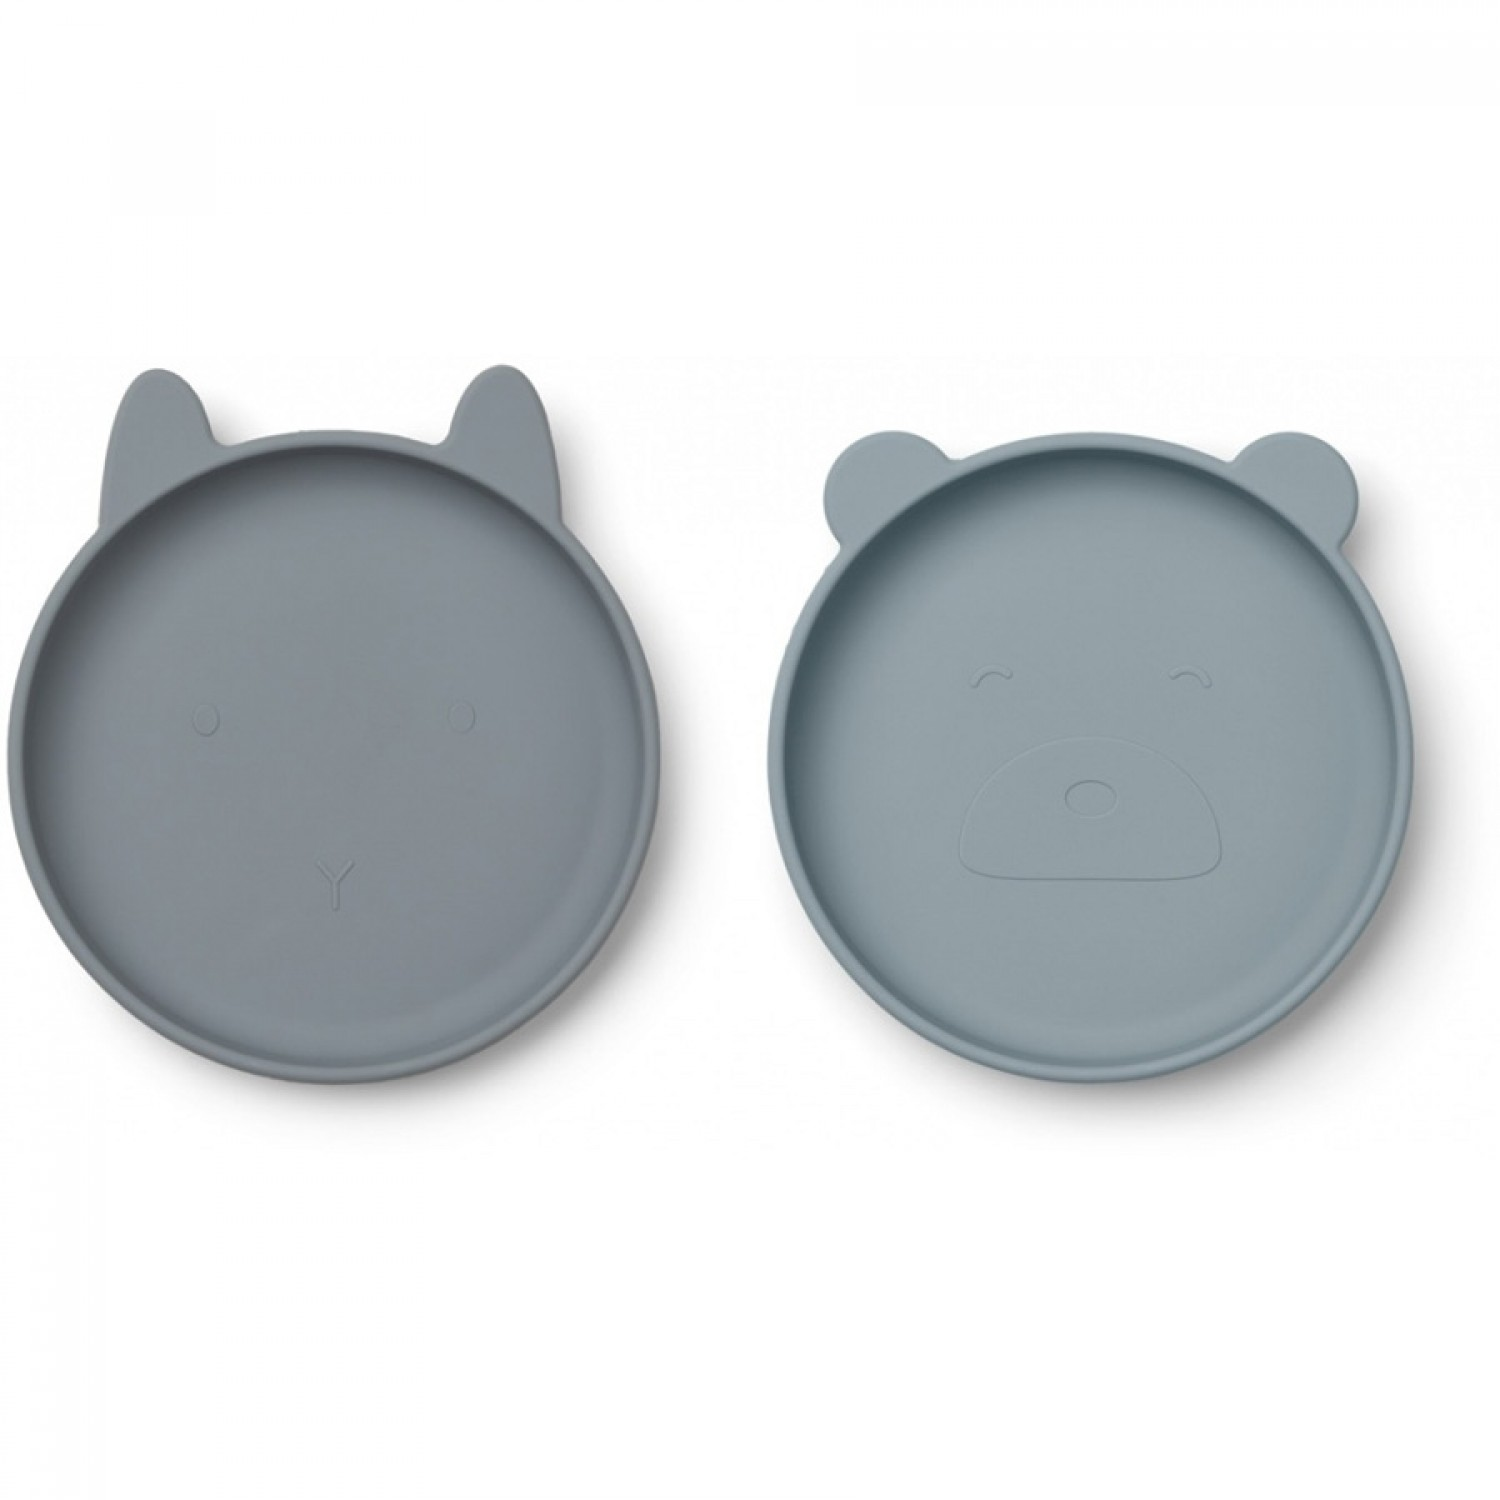 OLIVIA PLATE 2 PACK | BLUE MIX